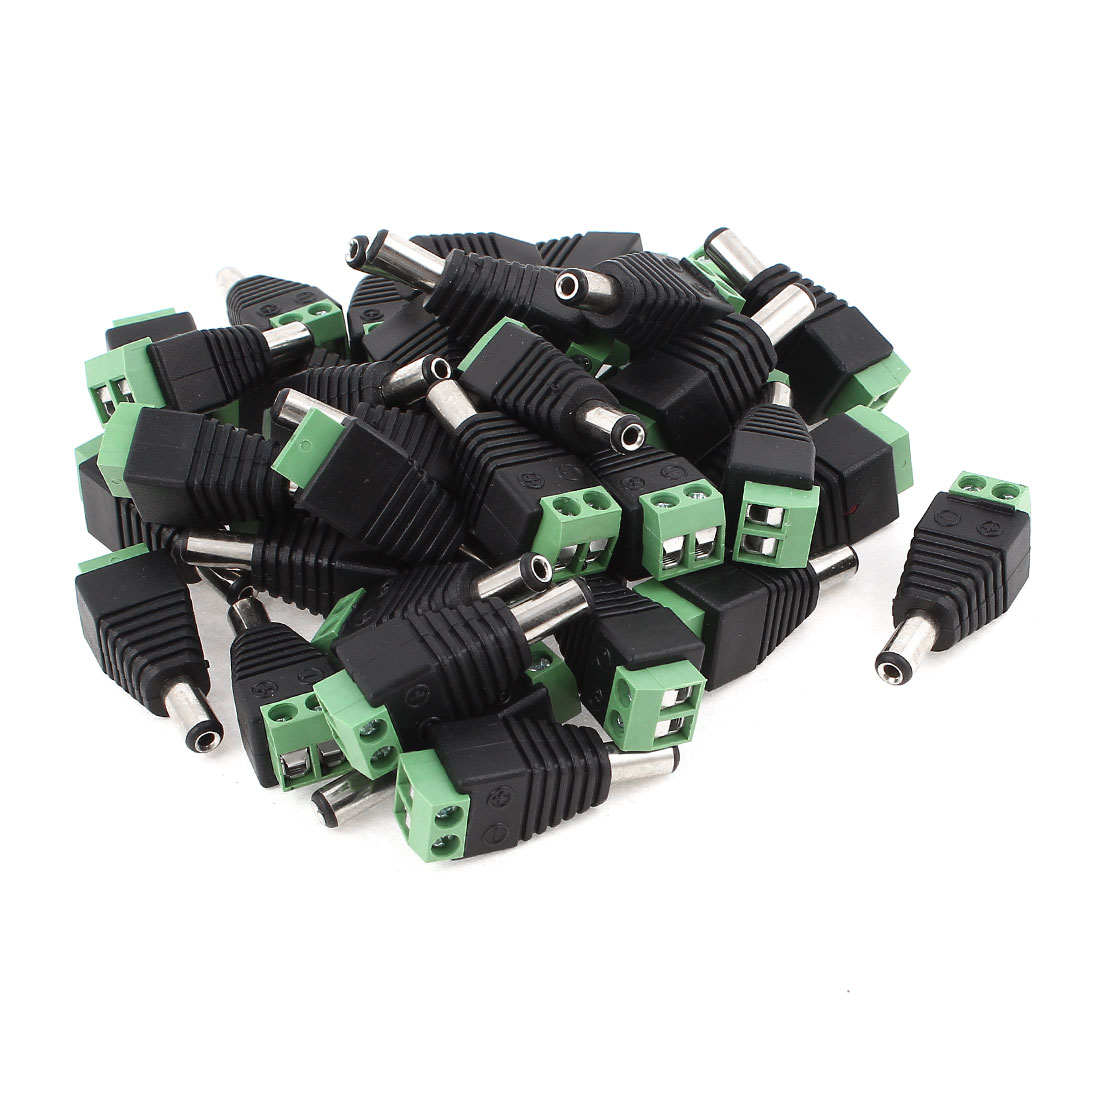 40 Pcs 2.1 x 5.5mm DC Power Male Plug Connector for CCTV Camera